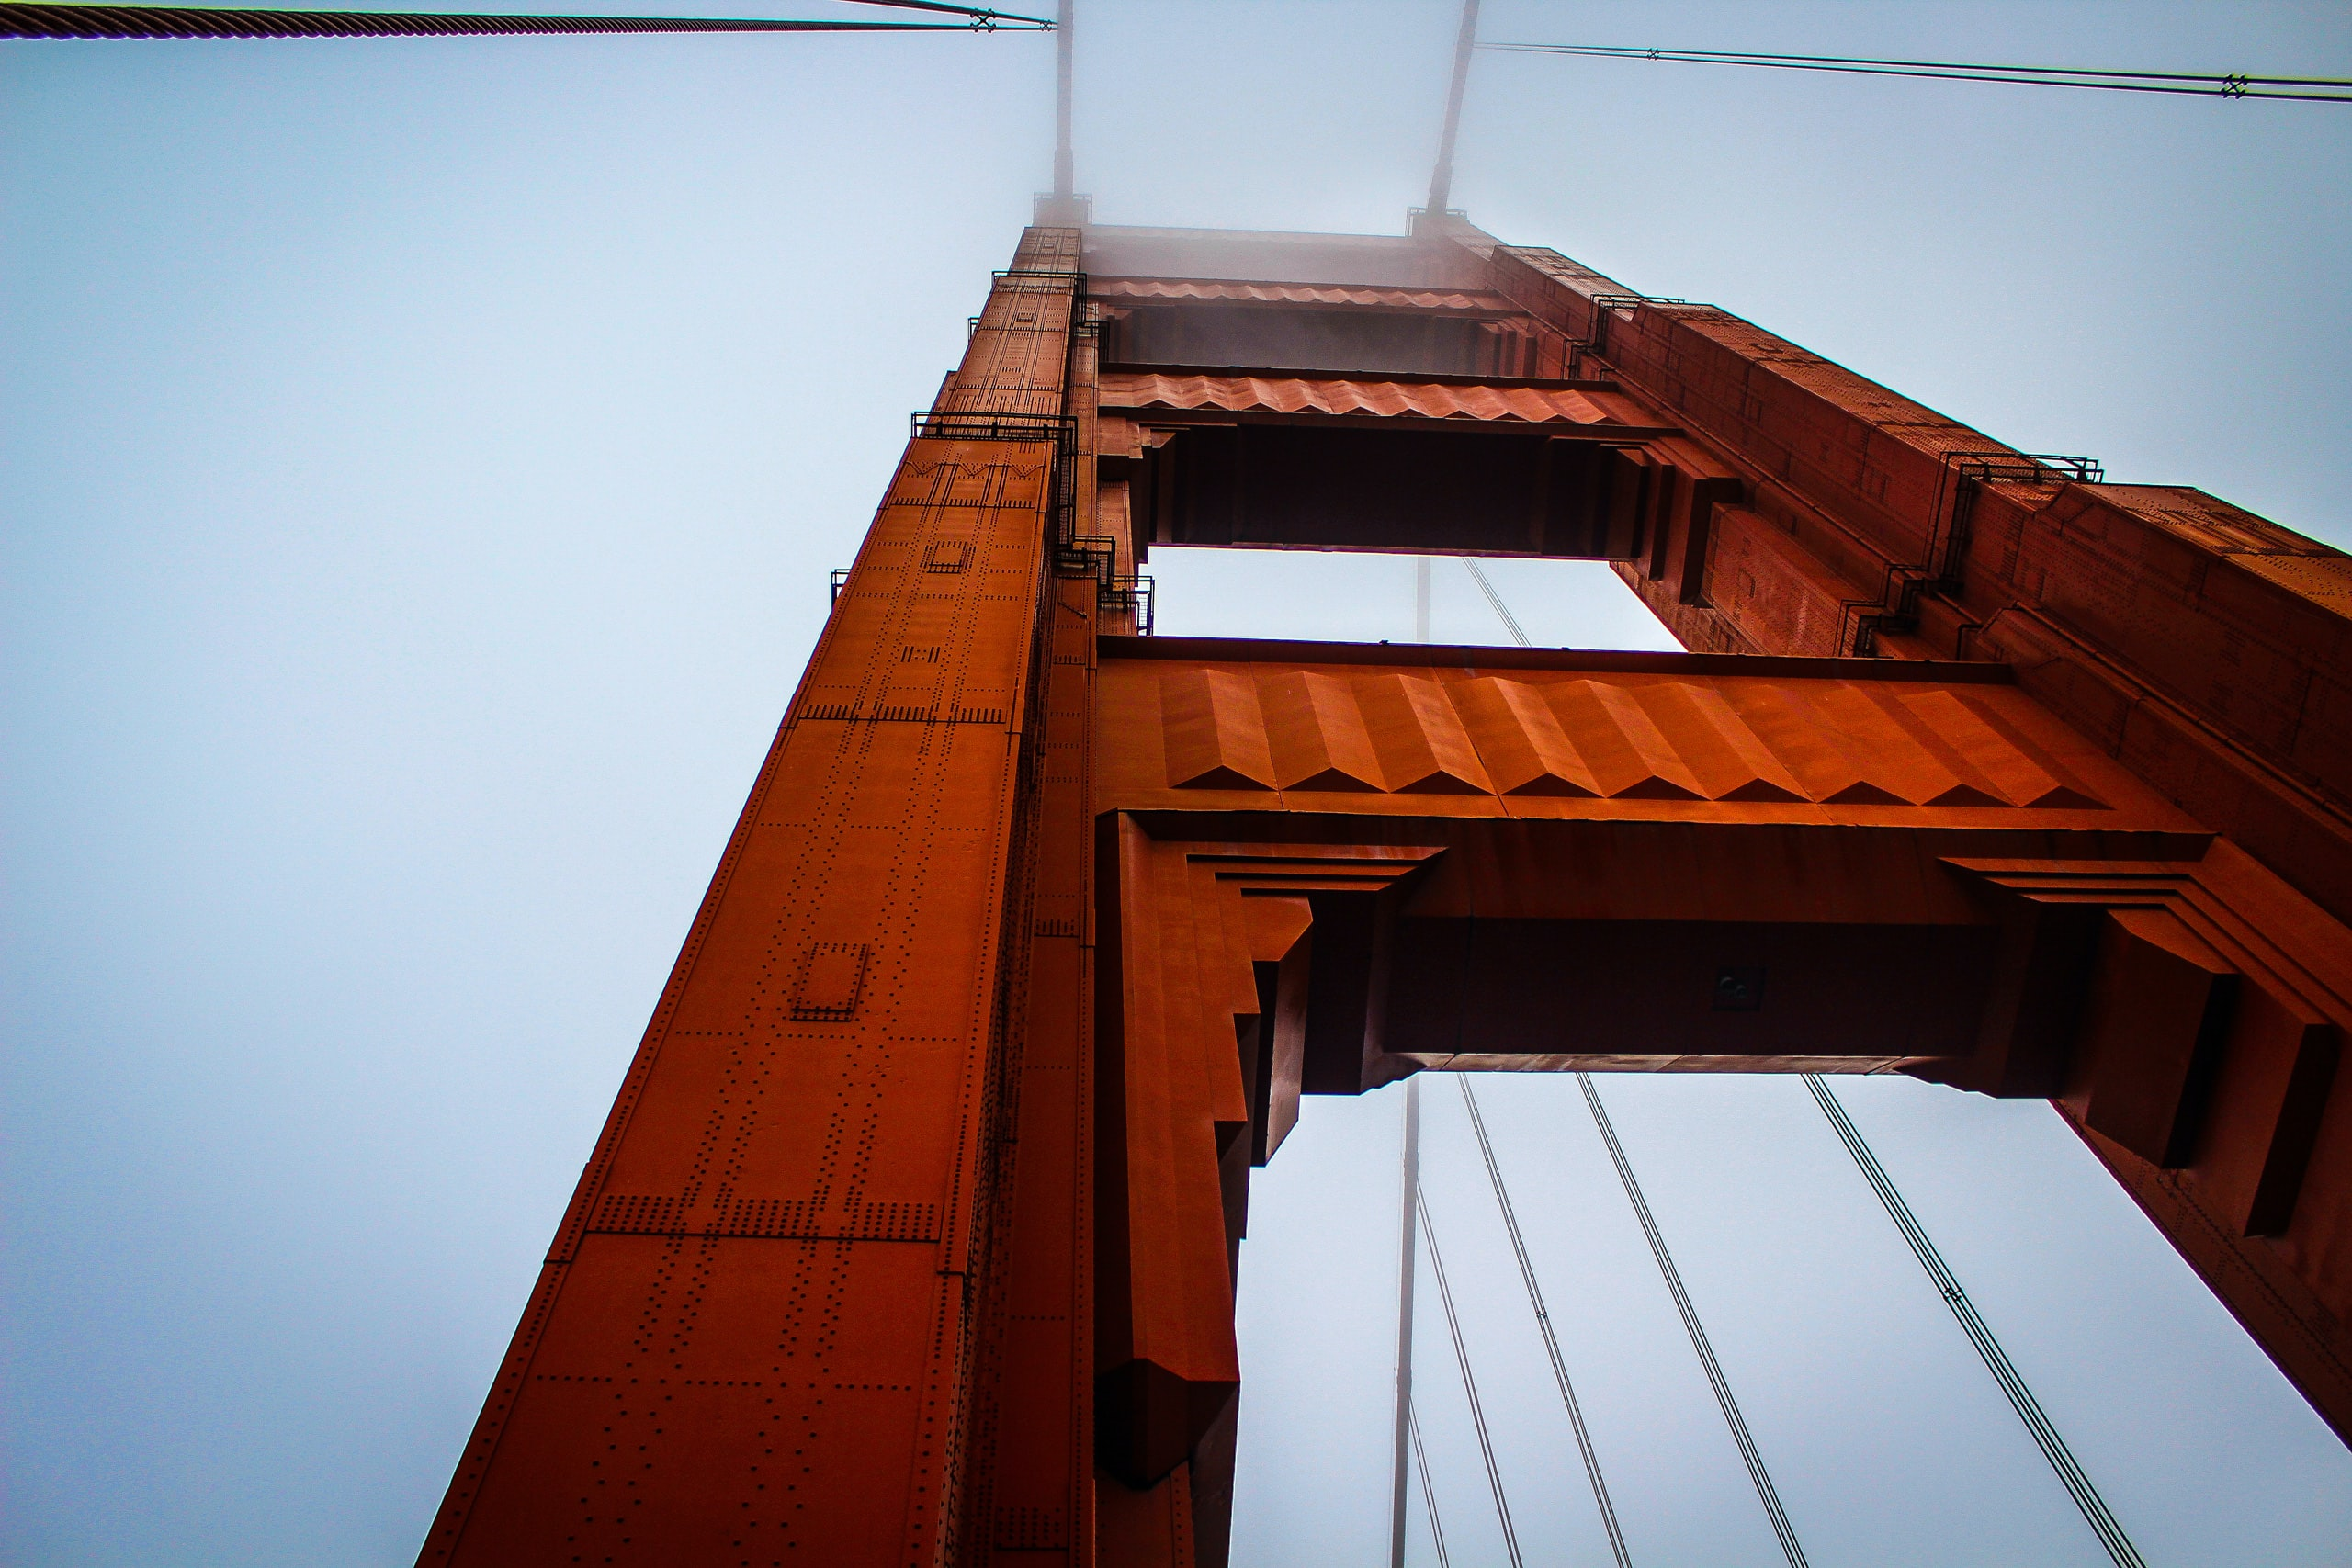 Unique perspective of Golden Gate Bridge on a foggy day